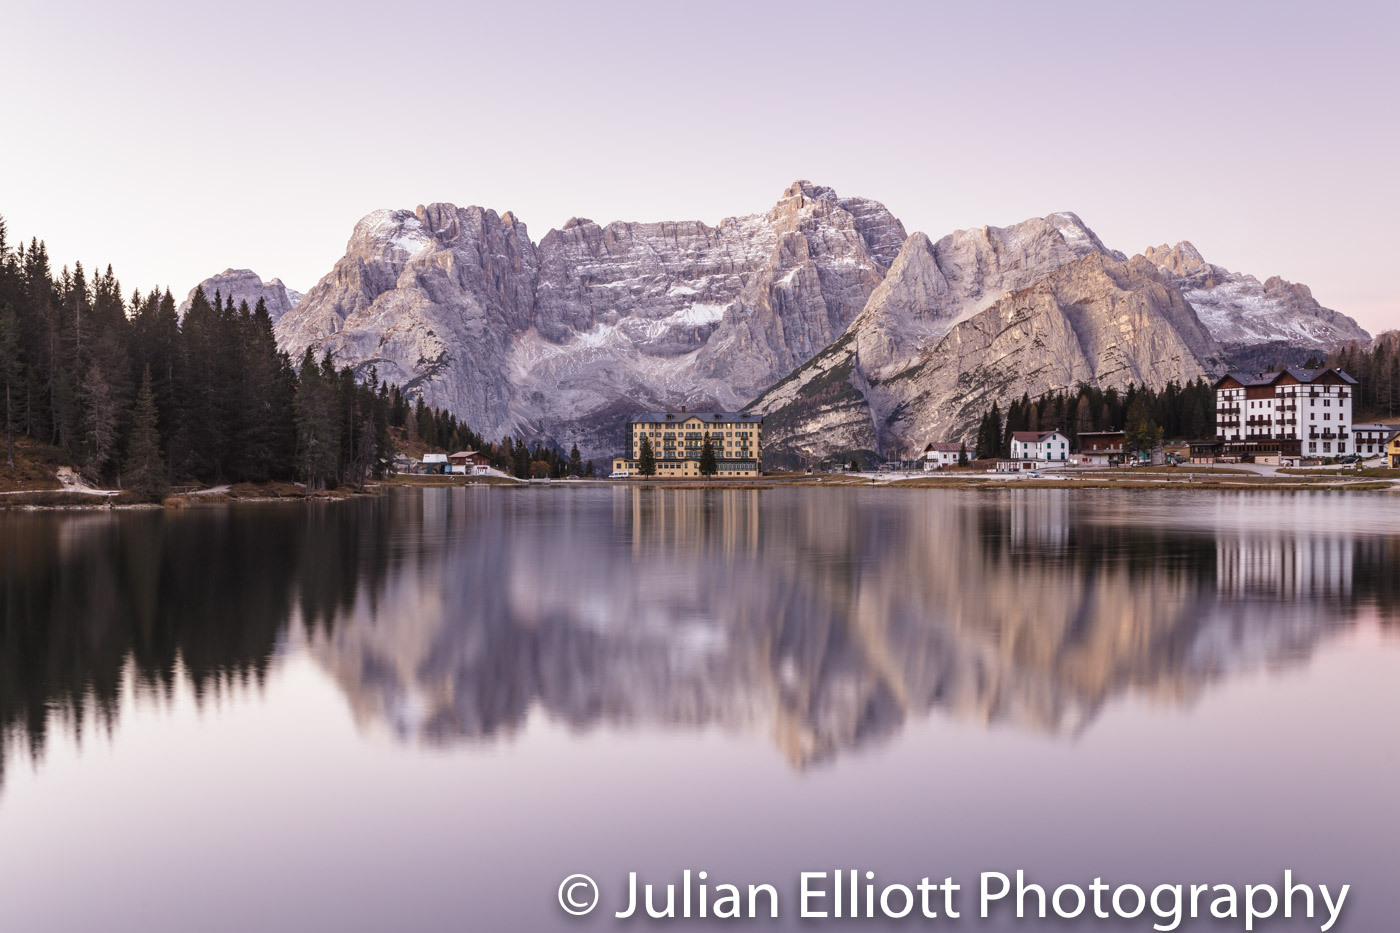 Lago di Misurina in the Dolomites at dawn, Italy.